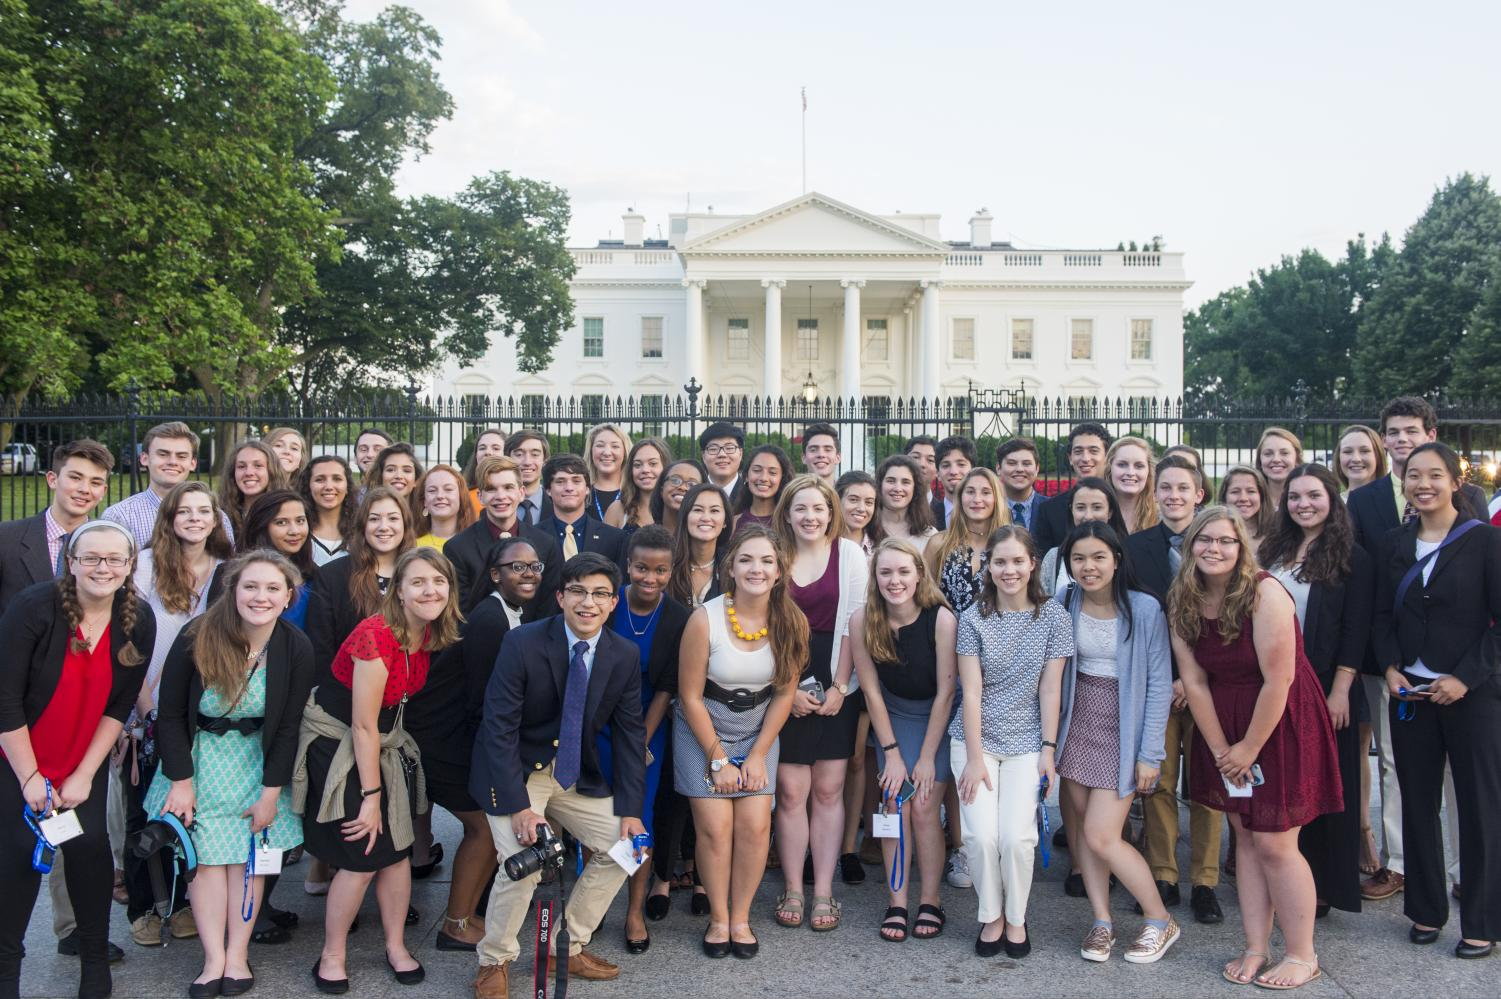 The+2017+scholars+stand+in+front+of+the+White+House.+%28Photo+courtesy+of+the+Newseum%29